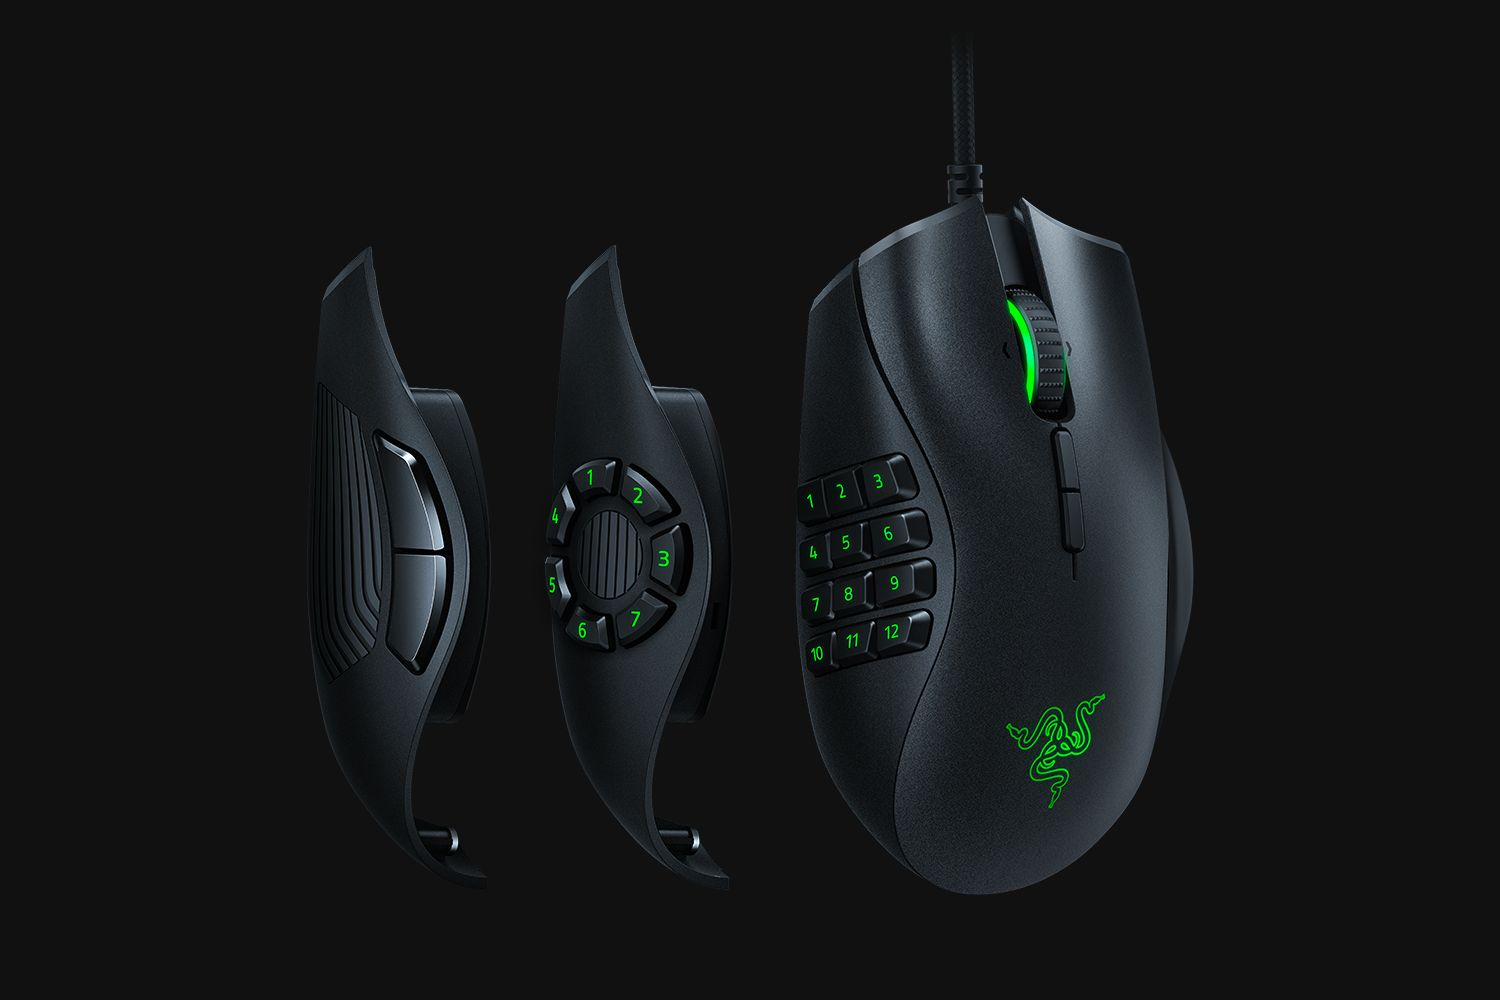 The 3 side panels of the Naga Trinity / Source: Razer